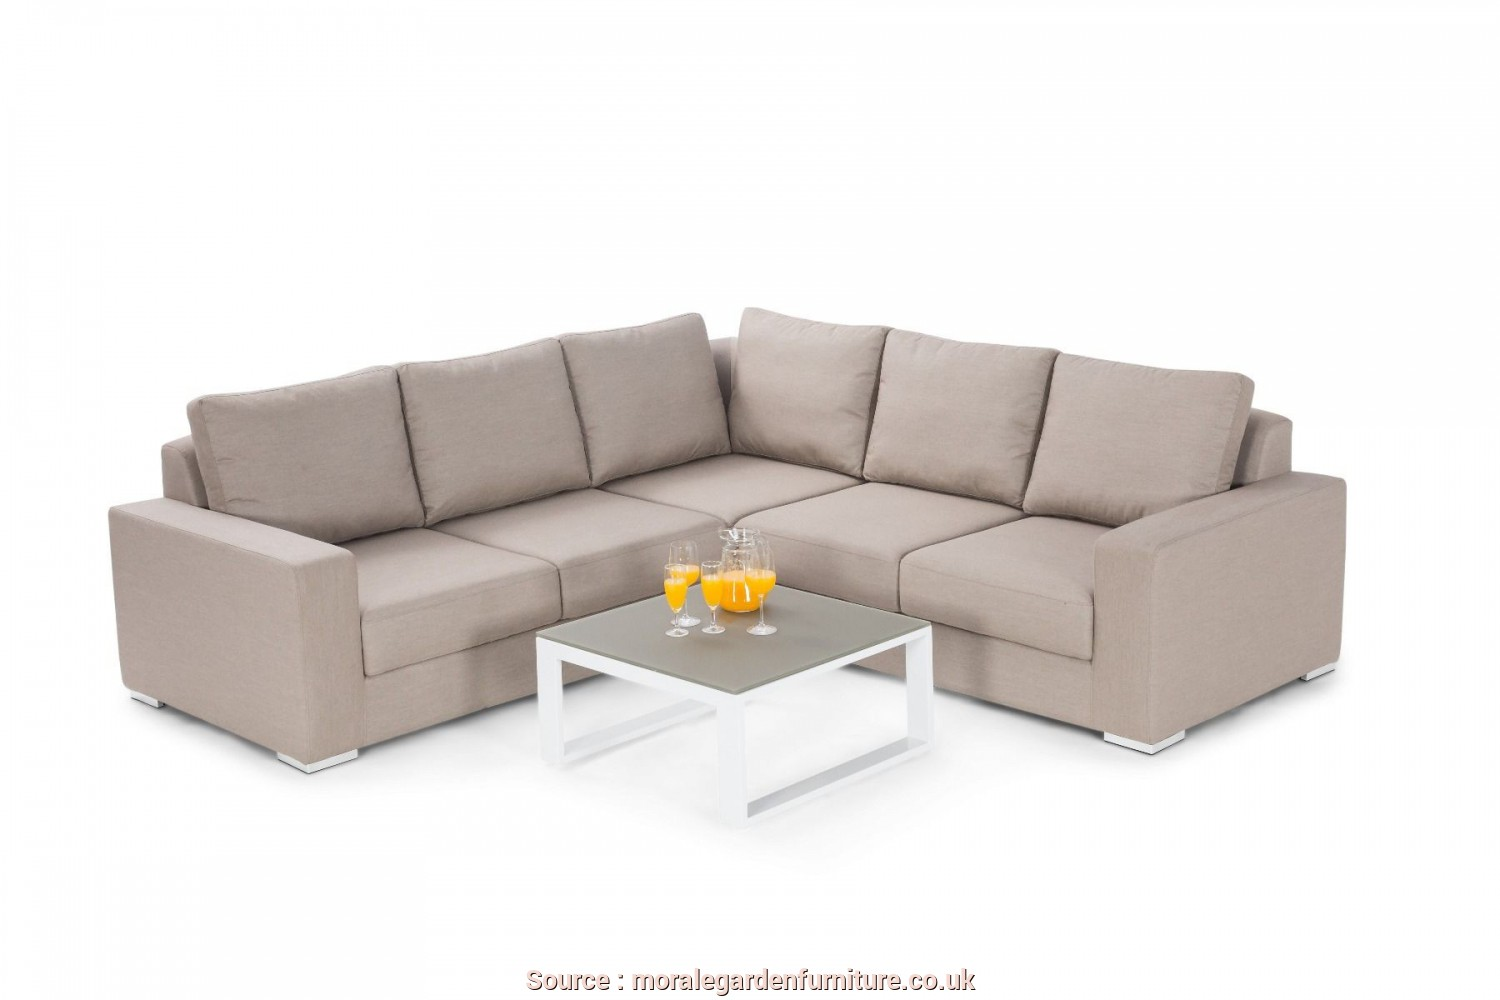 Maze Rattan Divano, Rustico Maze Rattan Divano, Weather Outdoor, Taupe Fabric Corner Sofa Group FB-ZE-CG-TA